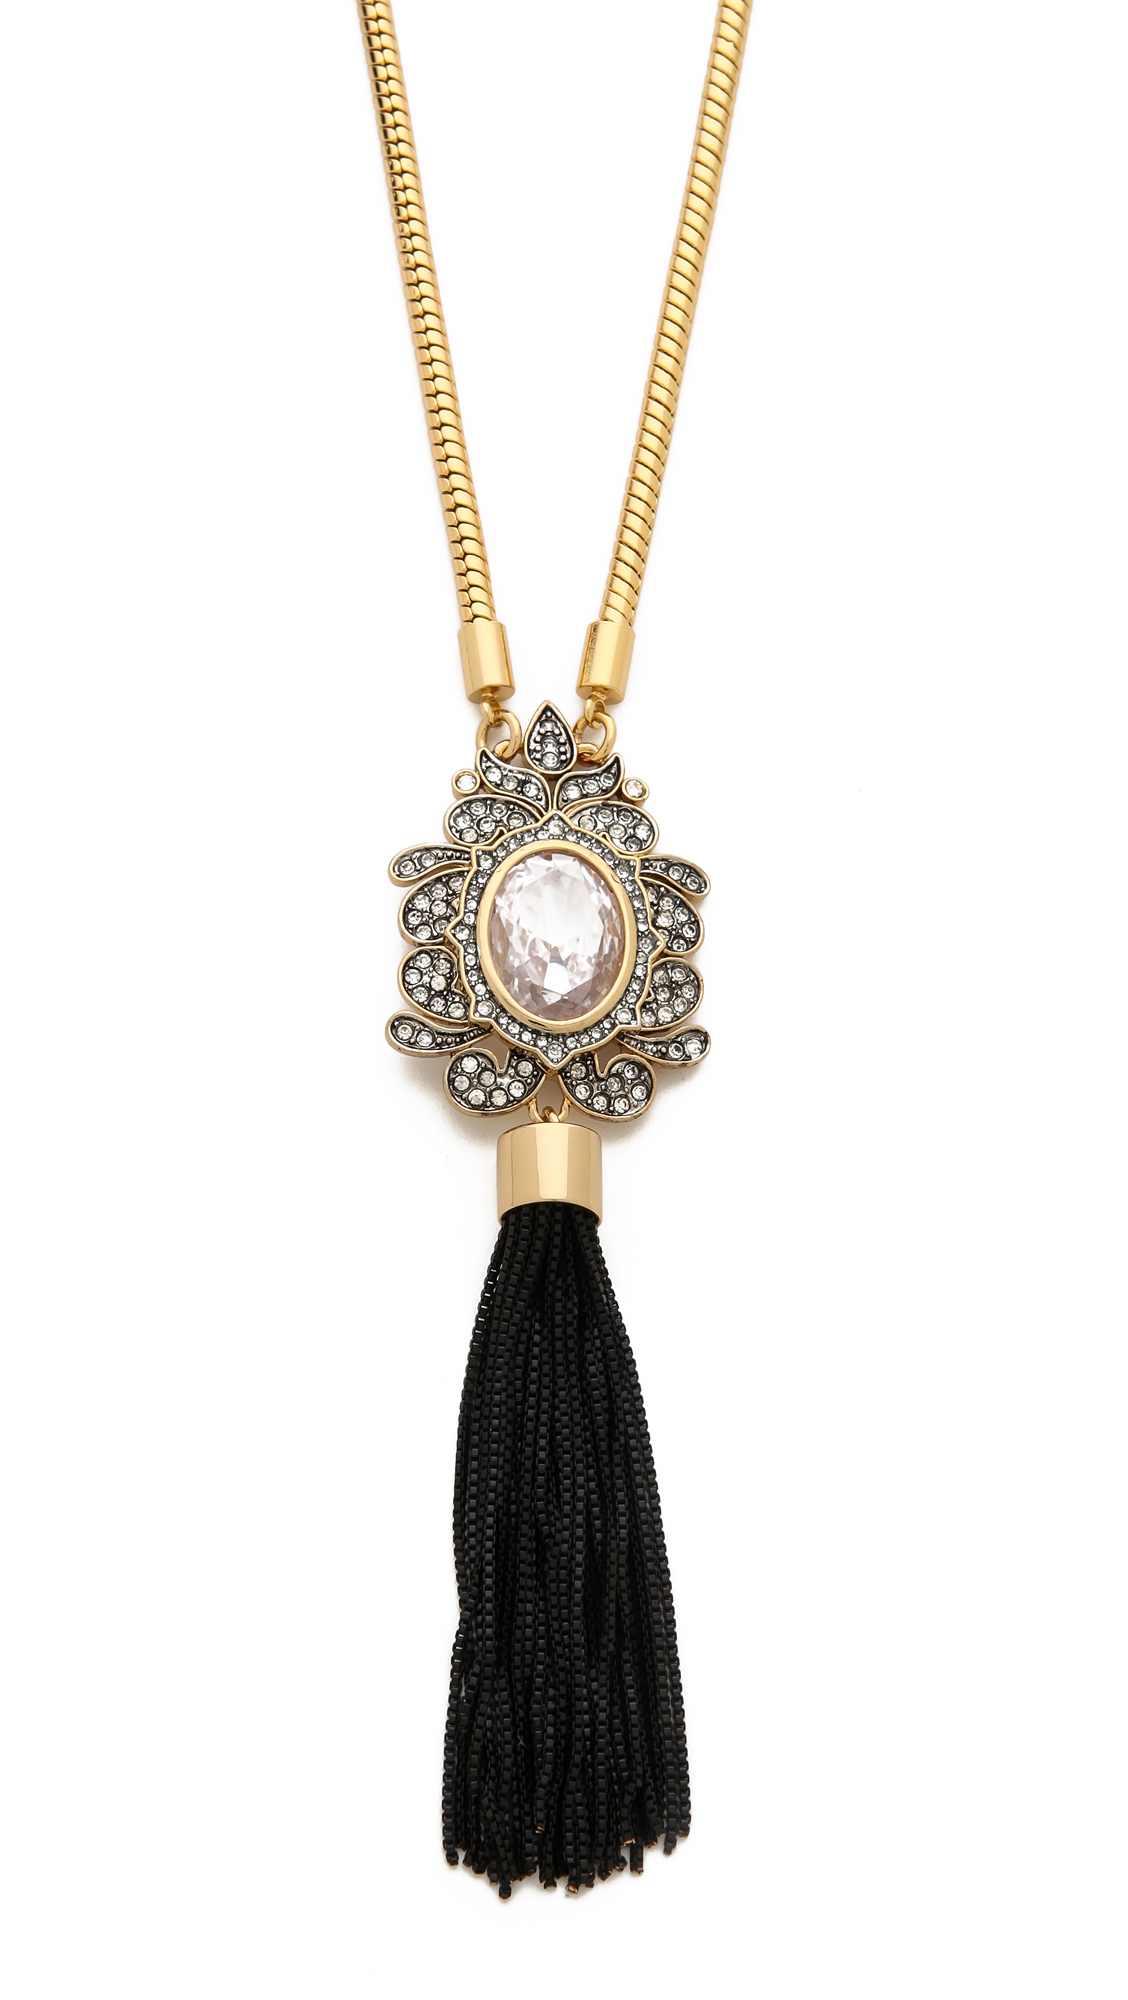 Juicy Couture Vintage Tassel Pendant Necklace In Metallic